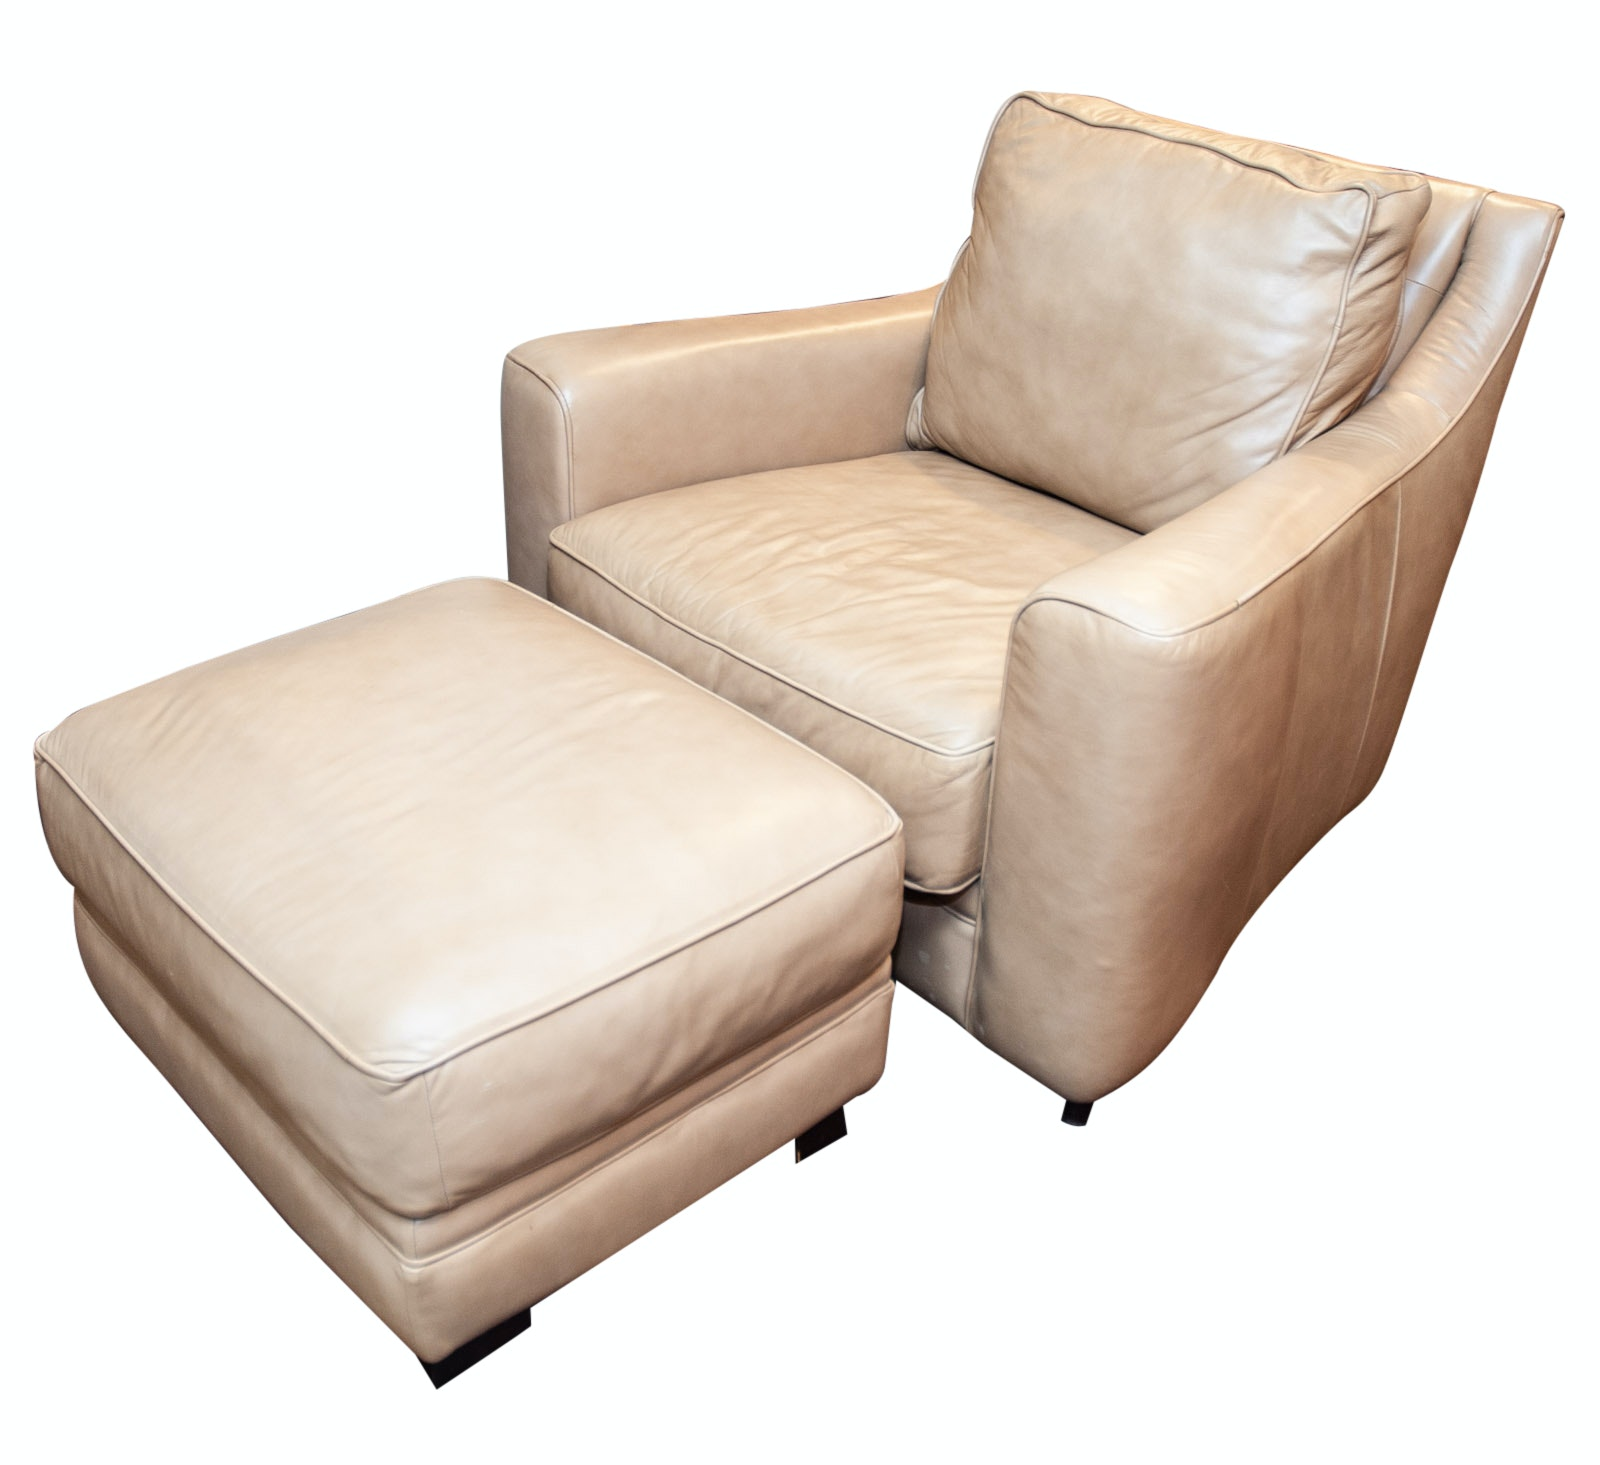 Sofa Express Tan Leather Armchair and Ottoman